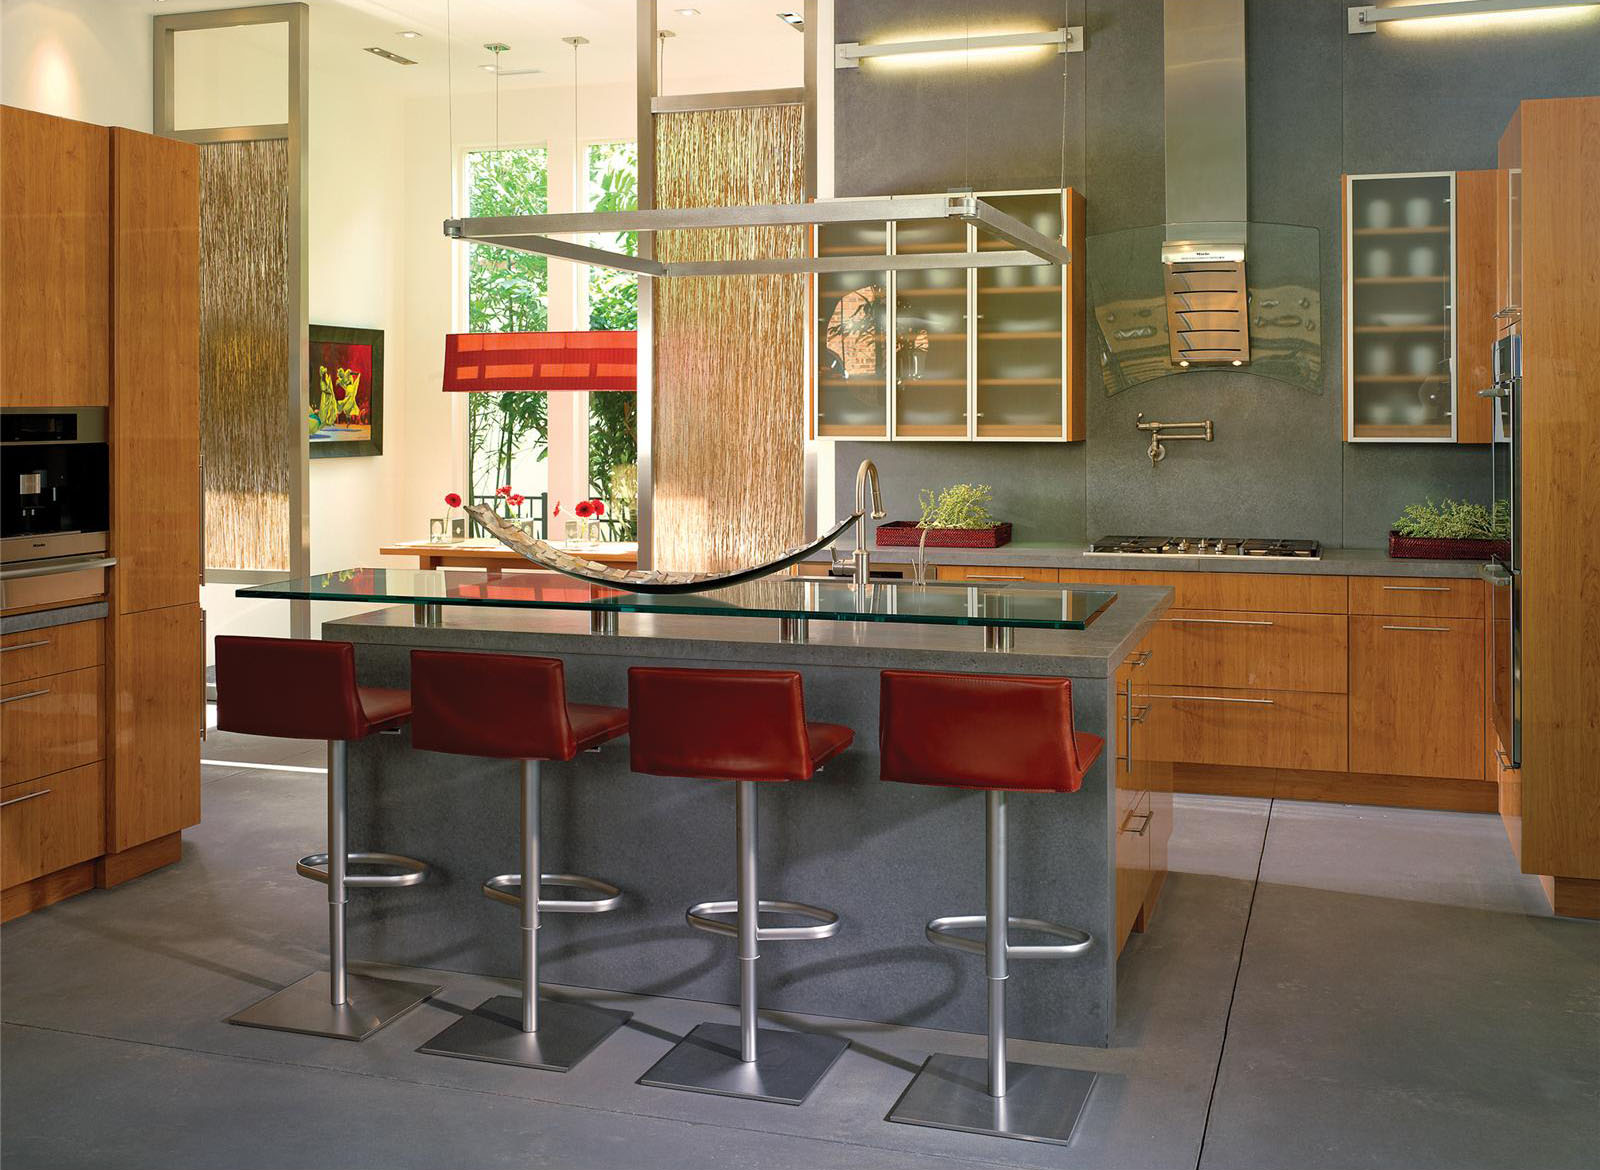 Stools for kitchen counter height Photo - 7